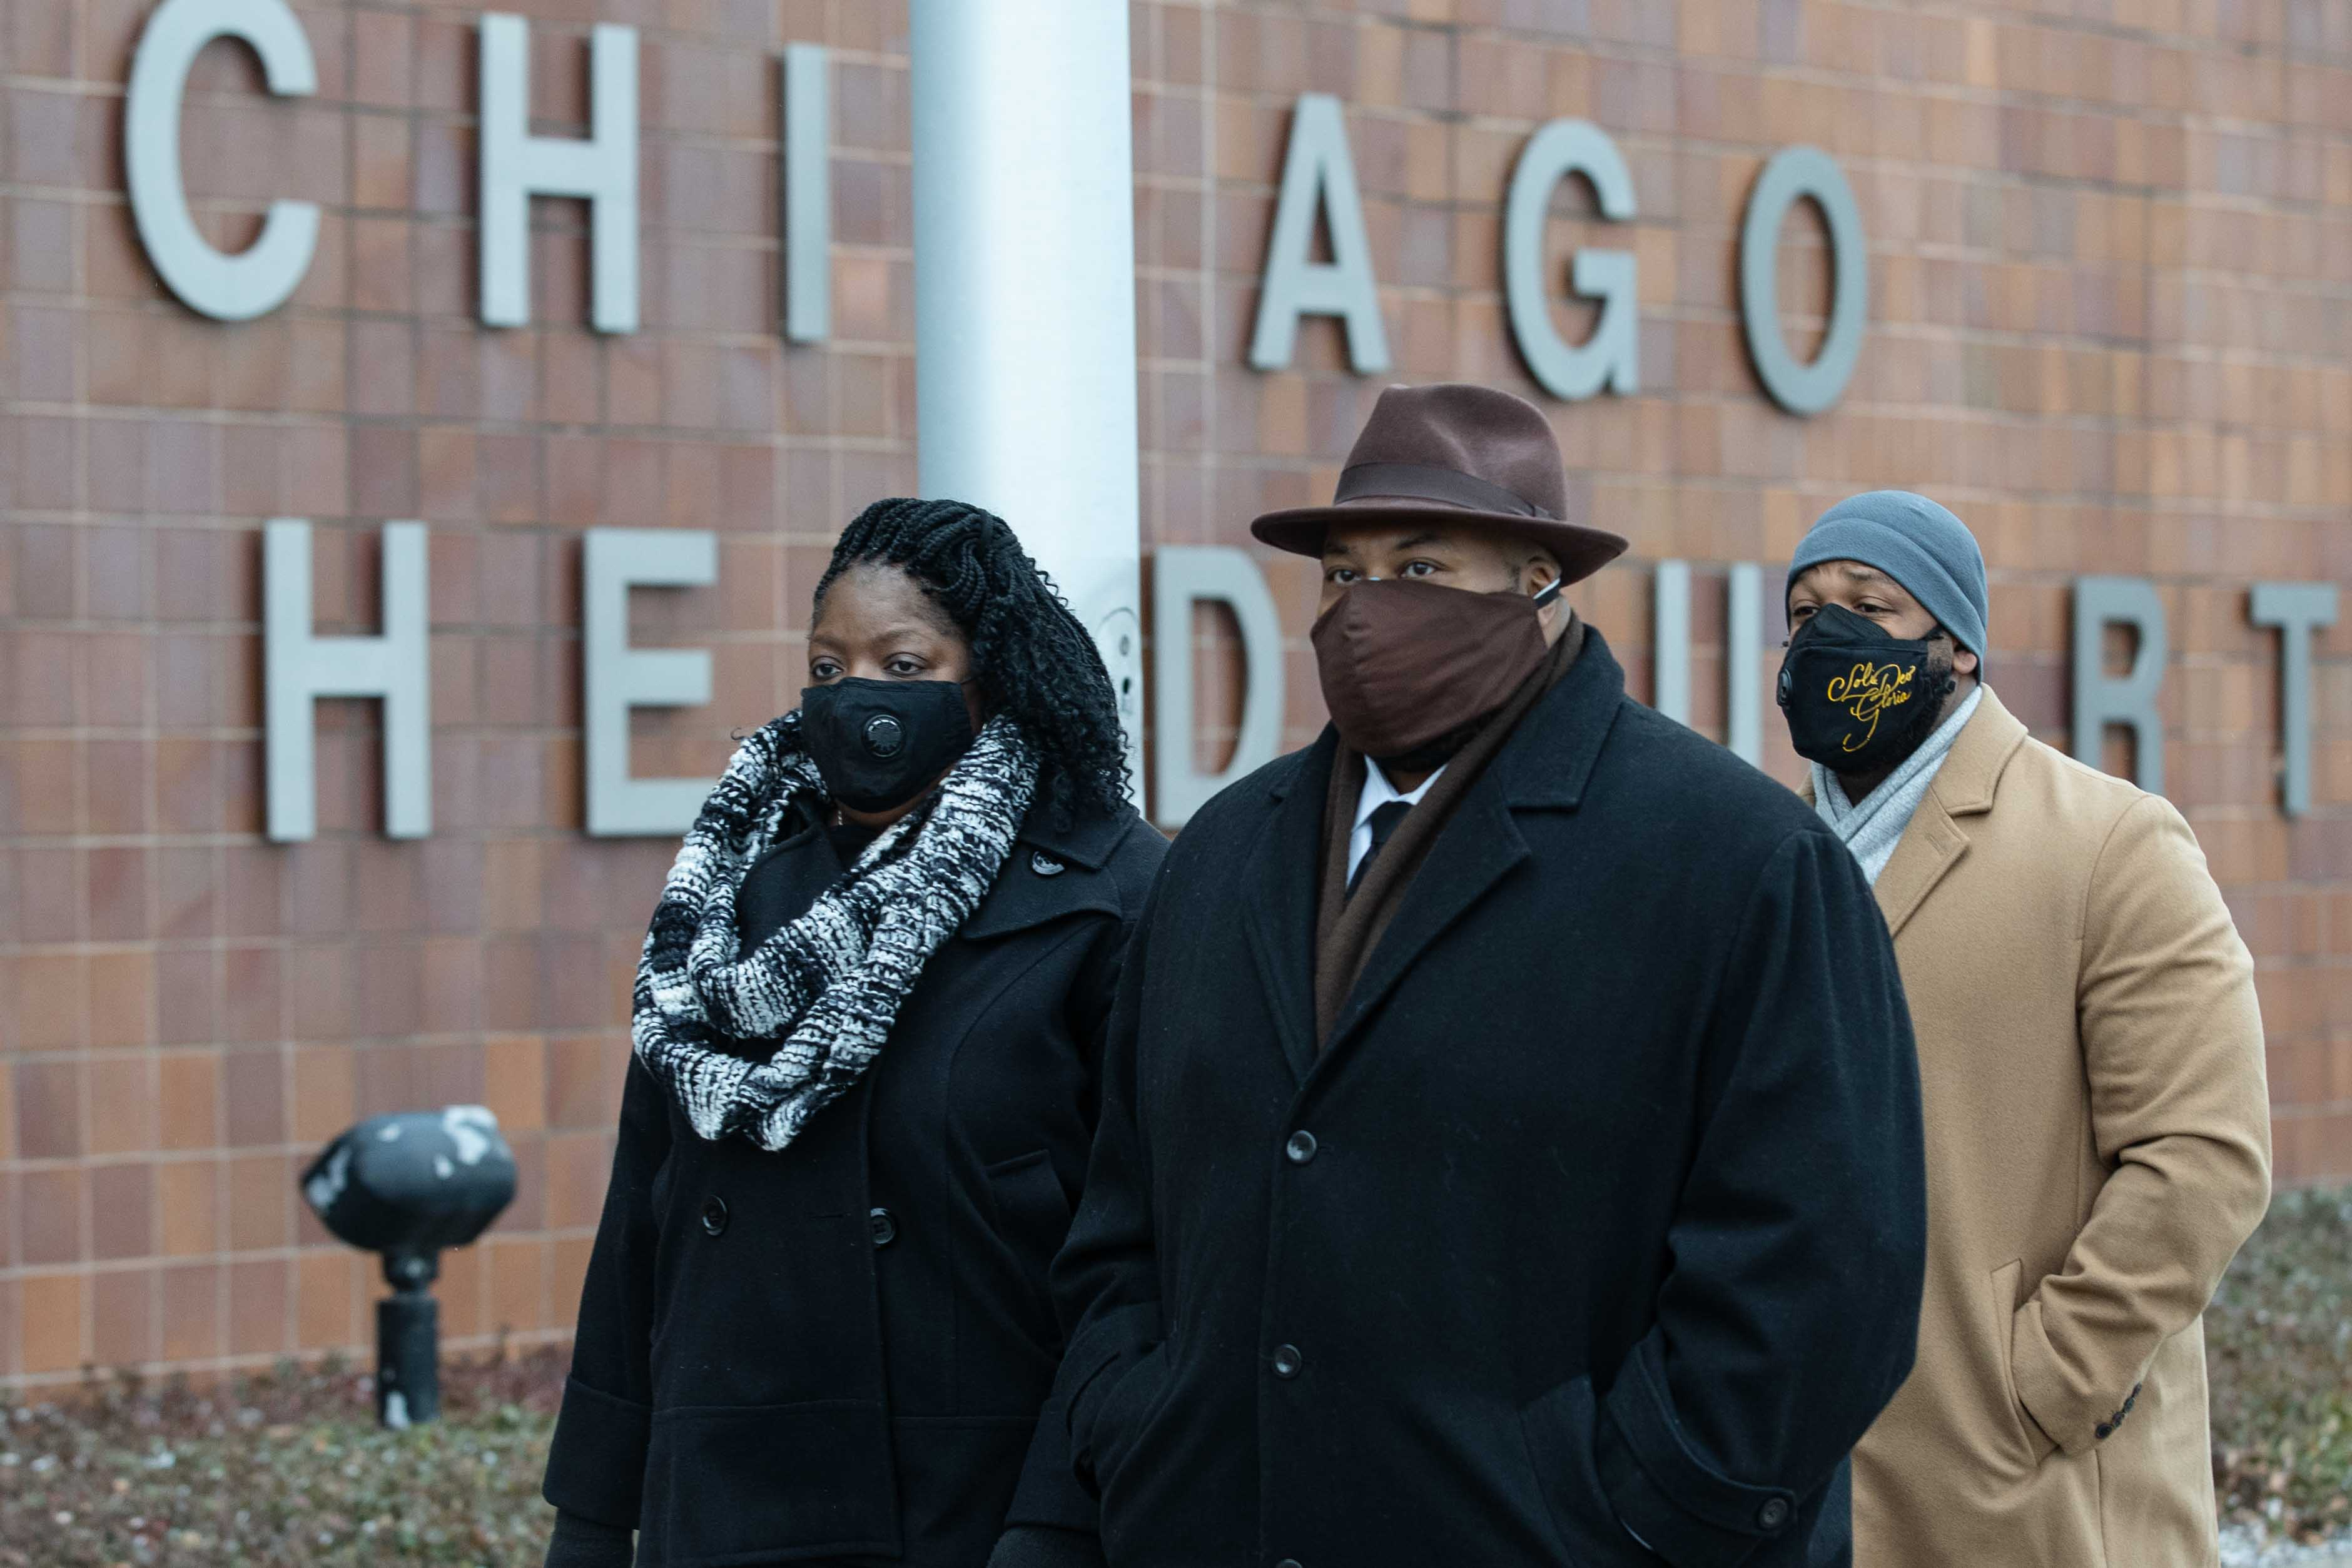 Anjanette Young, who was a victim of a botched raid by the Chicago Police Department in 2019, left, and her attorney Keenan Saulter, center, walks to a press conference outside the Chicago Police Department headquarters Dec. 16. Young met with Mayor Lori Lightfoot on Thursday.